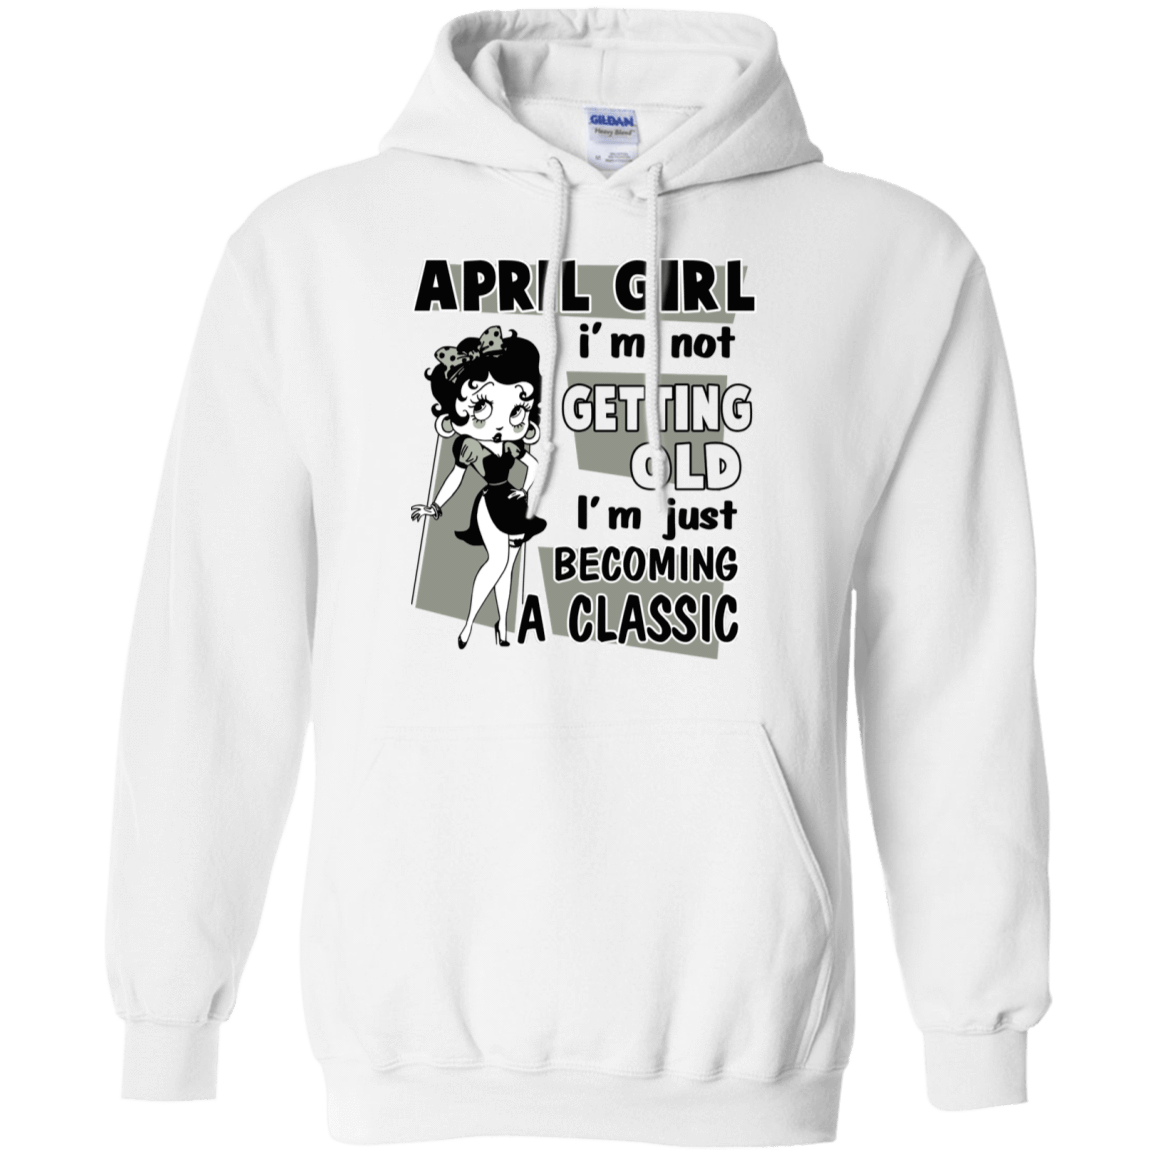 April Girl I'm Not Getting Old I'm Just Becoming A Classic T-Shirts, Hoodies 541-4744-77495251-23183 - Tee Ript